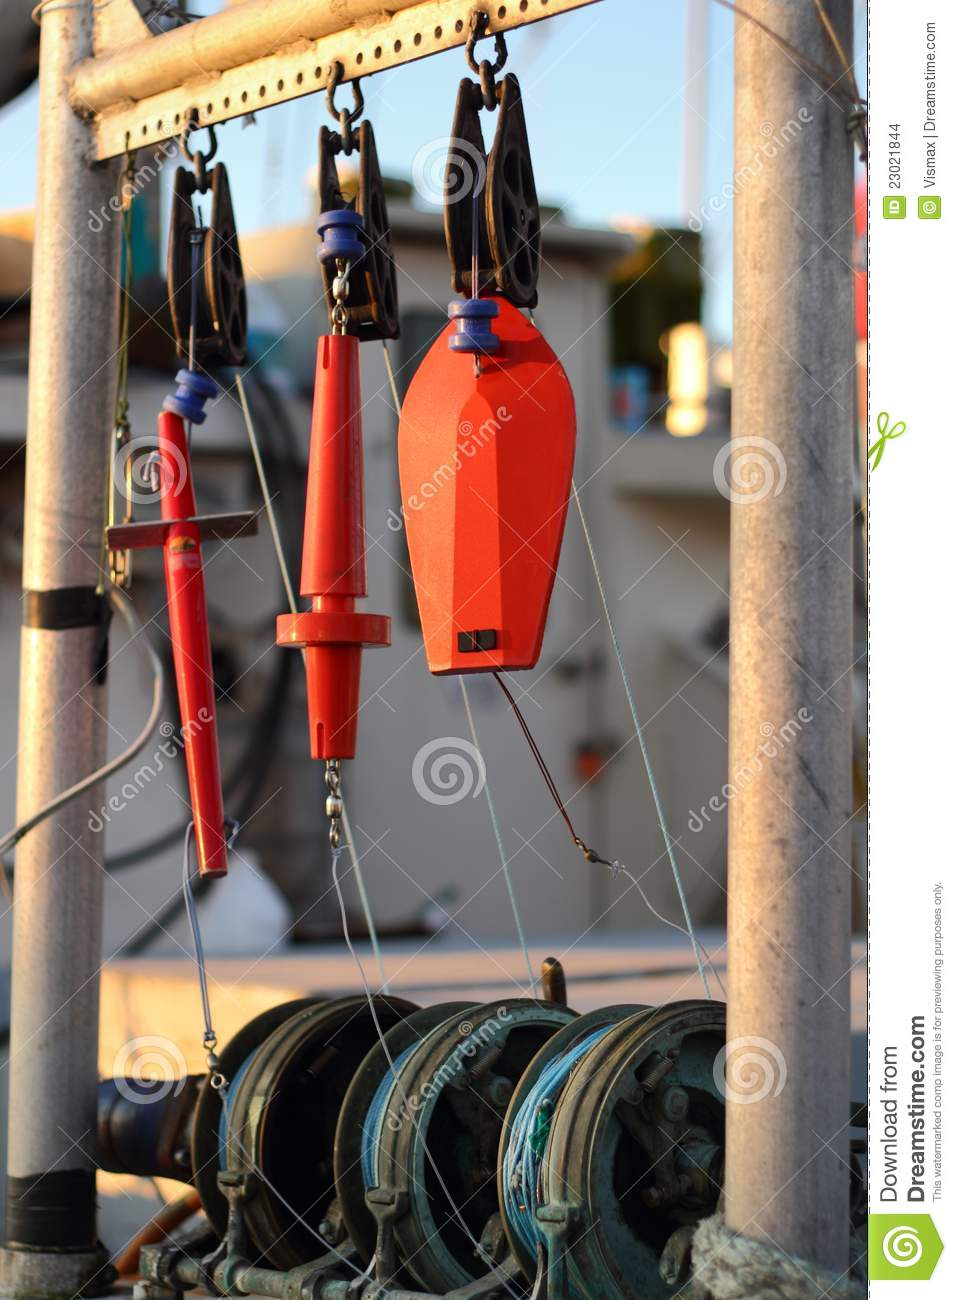 Commercial fishing equipment stock images image 23021844 for Commercial fishing gear